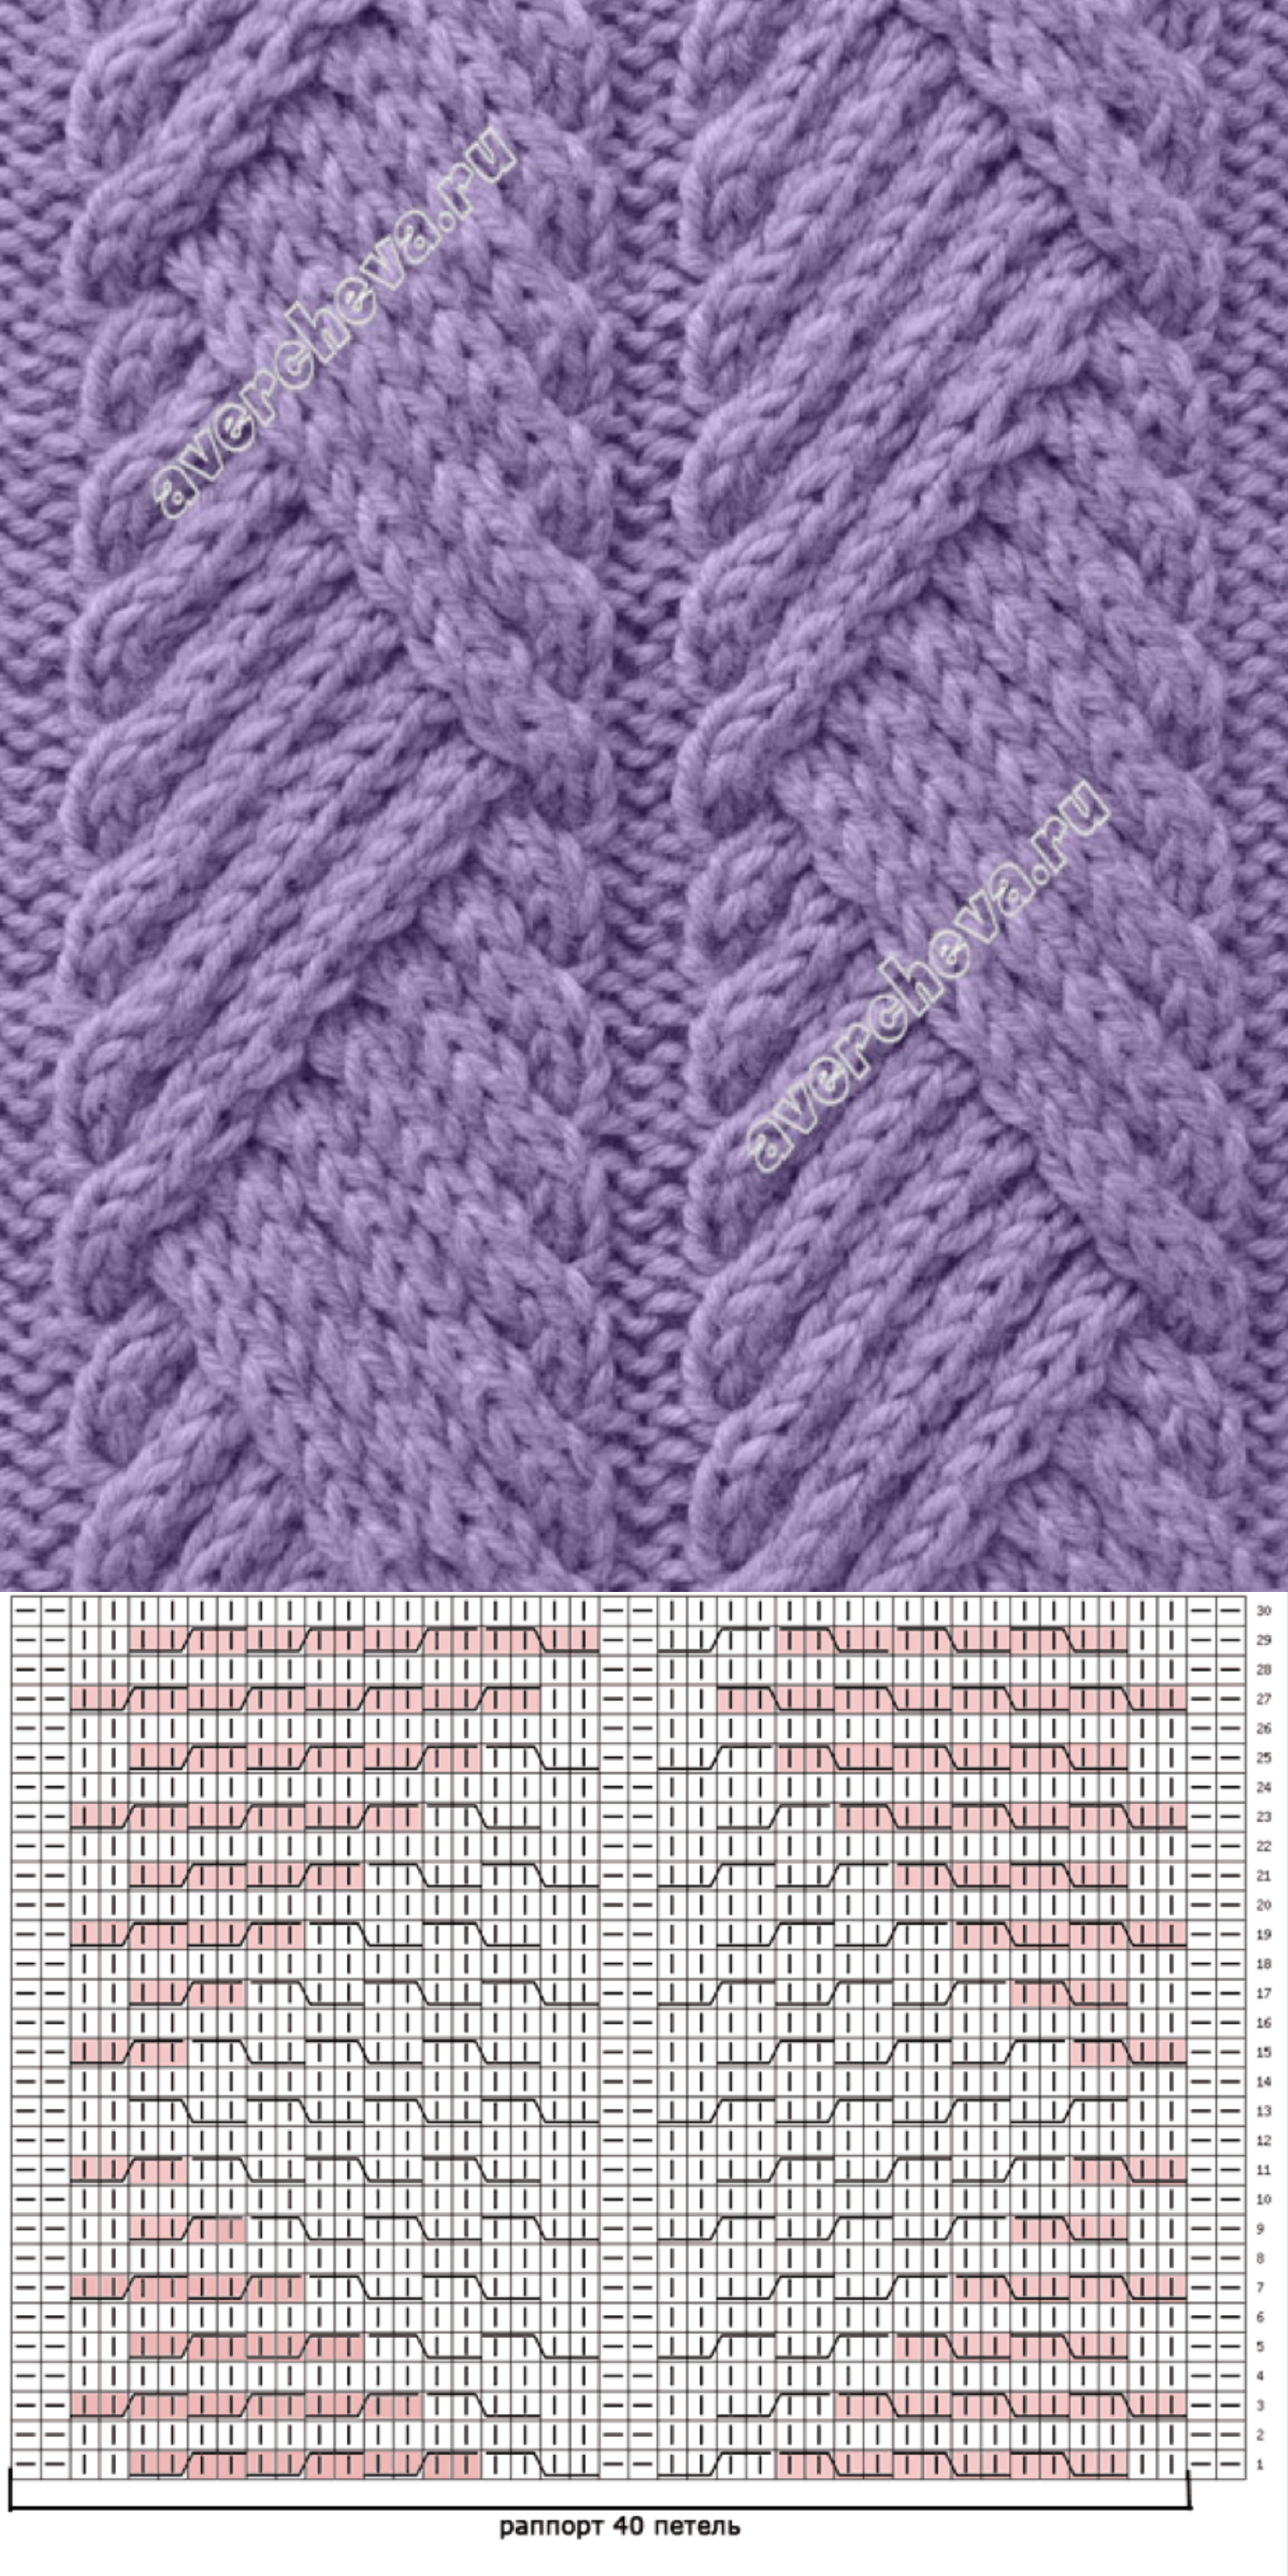 Knitting_Stitch -- This beautiful stitch is a simple 2-2 crossover ...